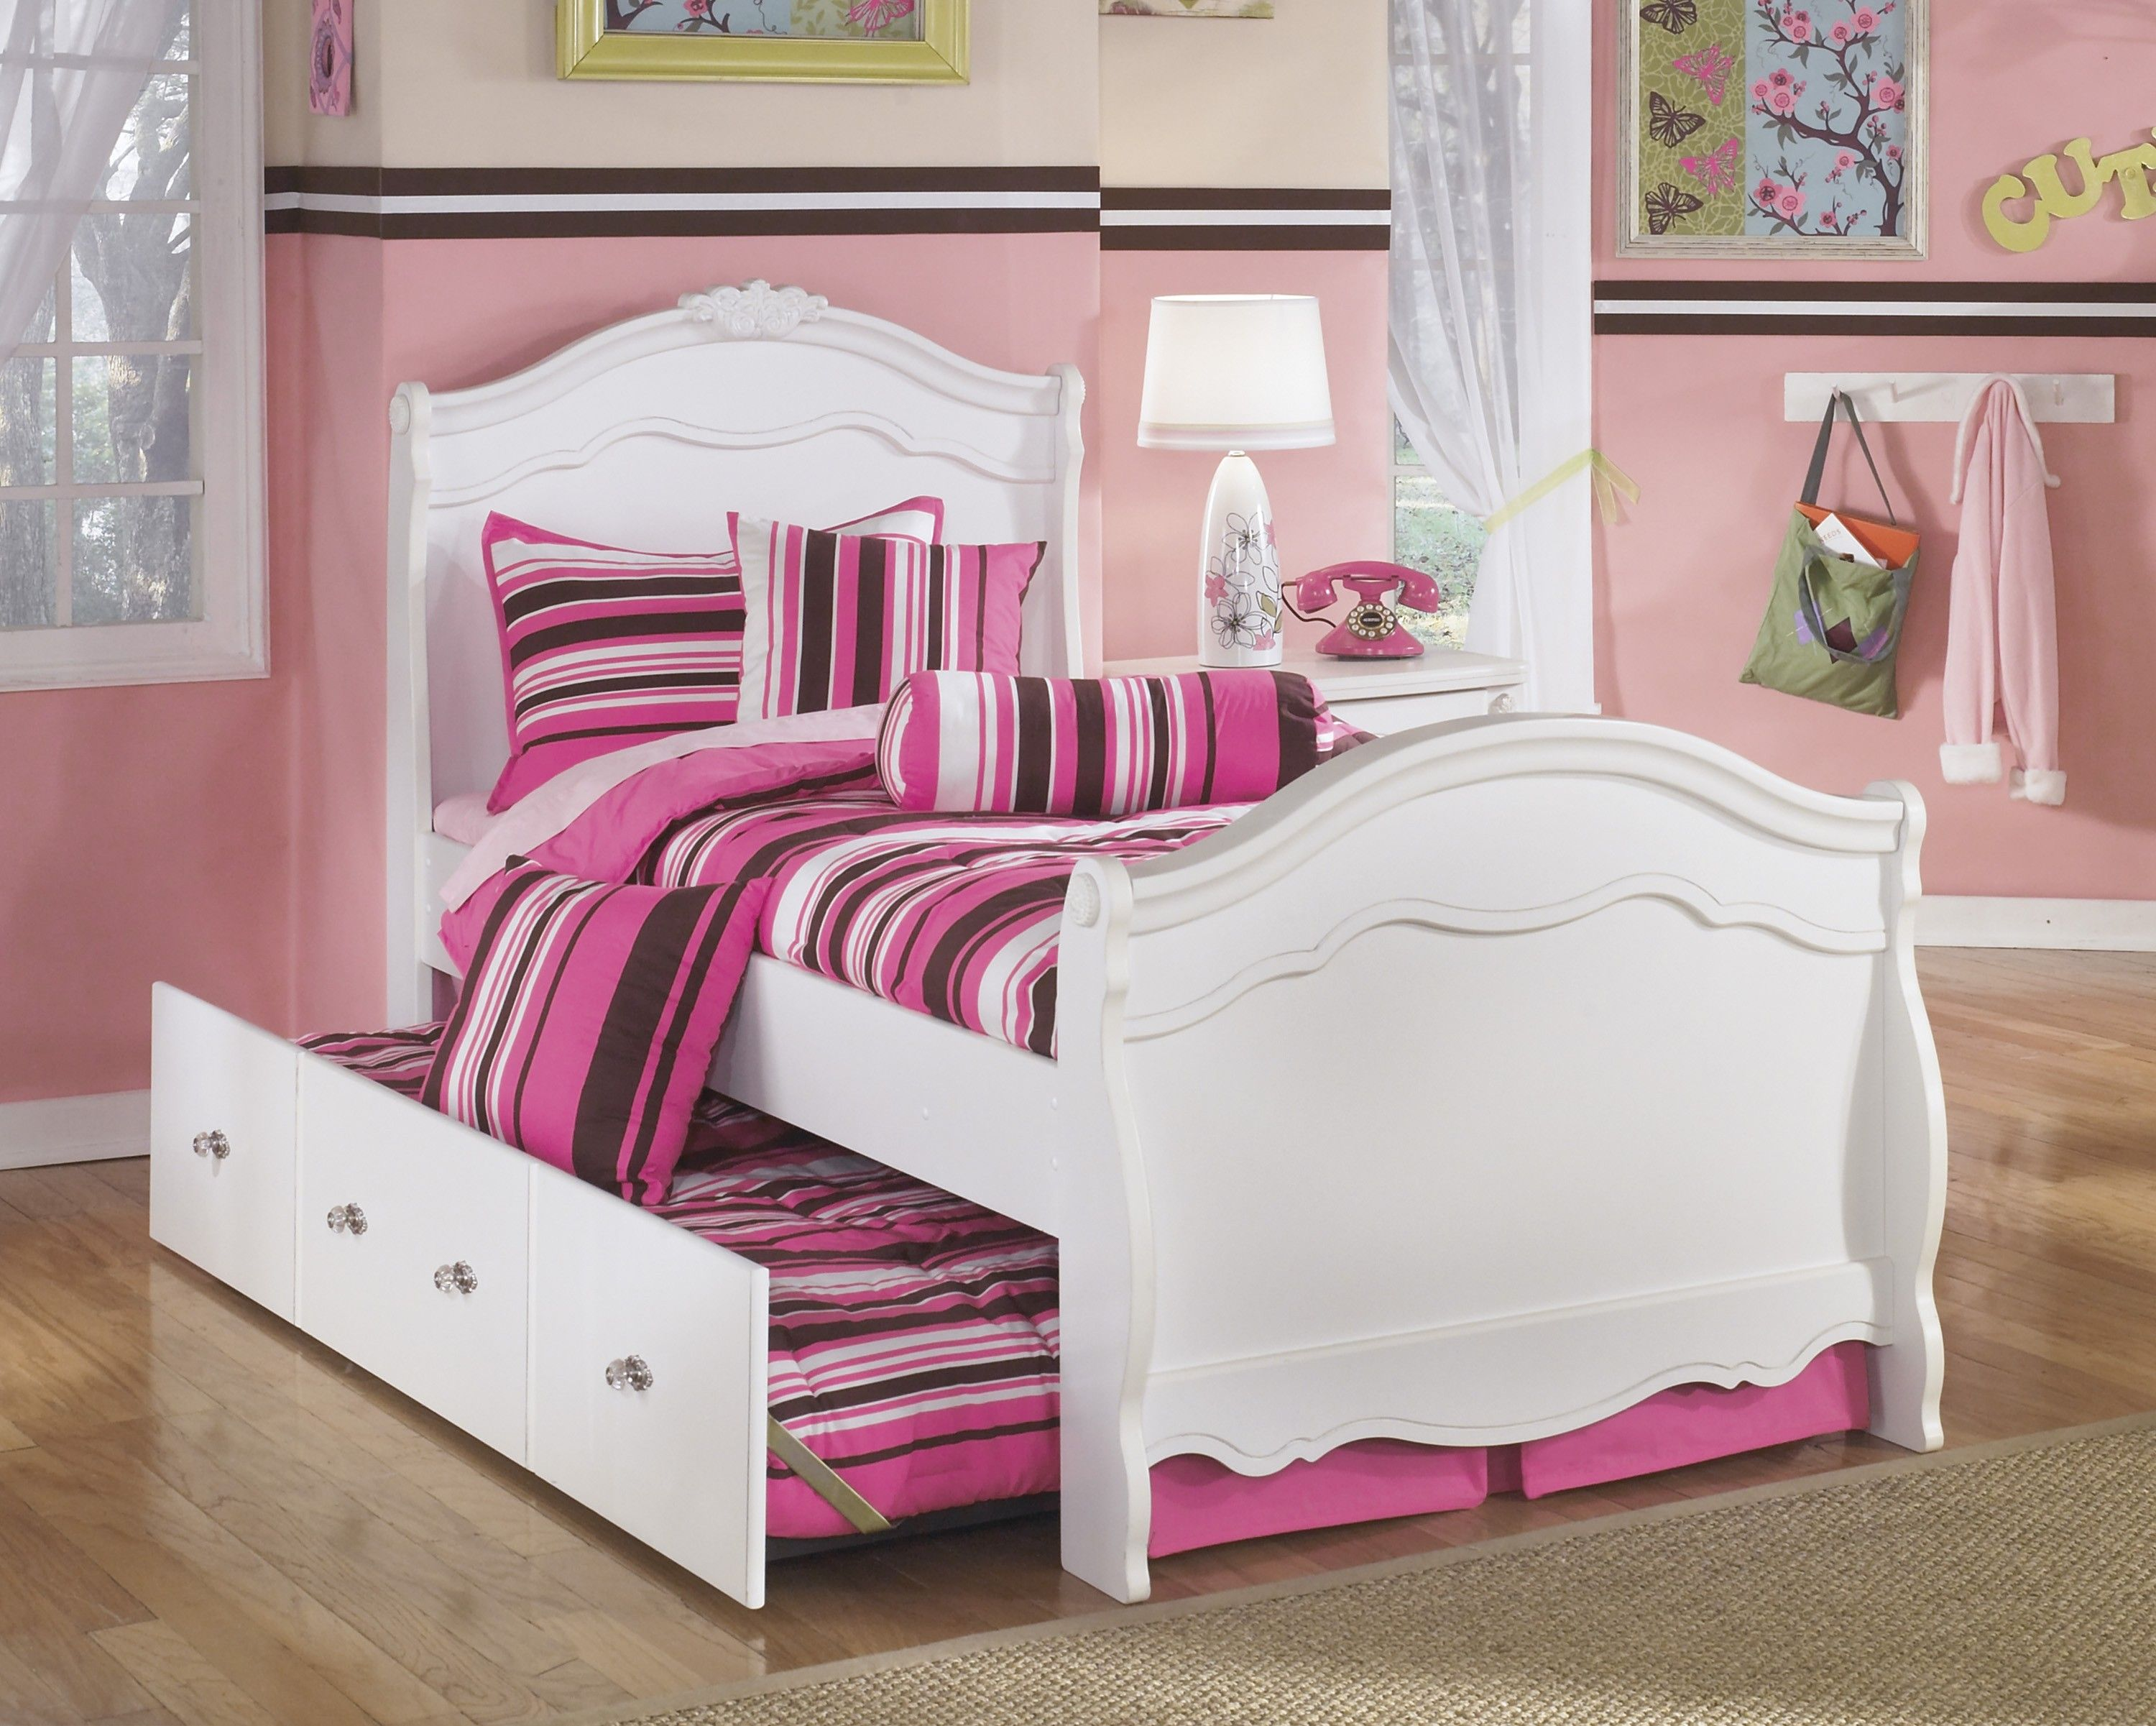 Twin Sleigh Bed Diana Exquisite Twin Sleigh Storage Bed By